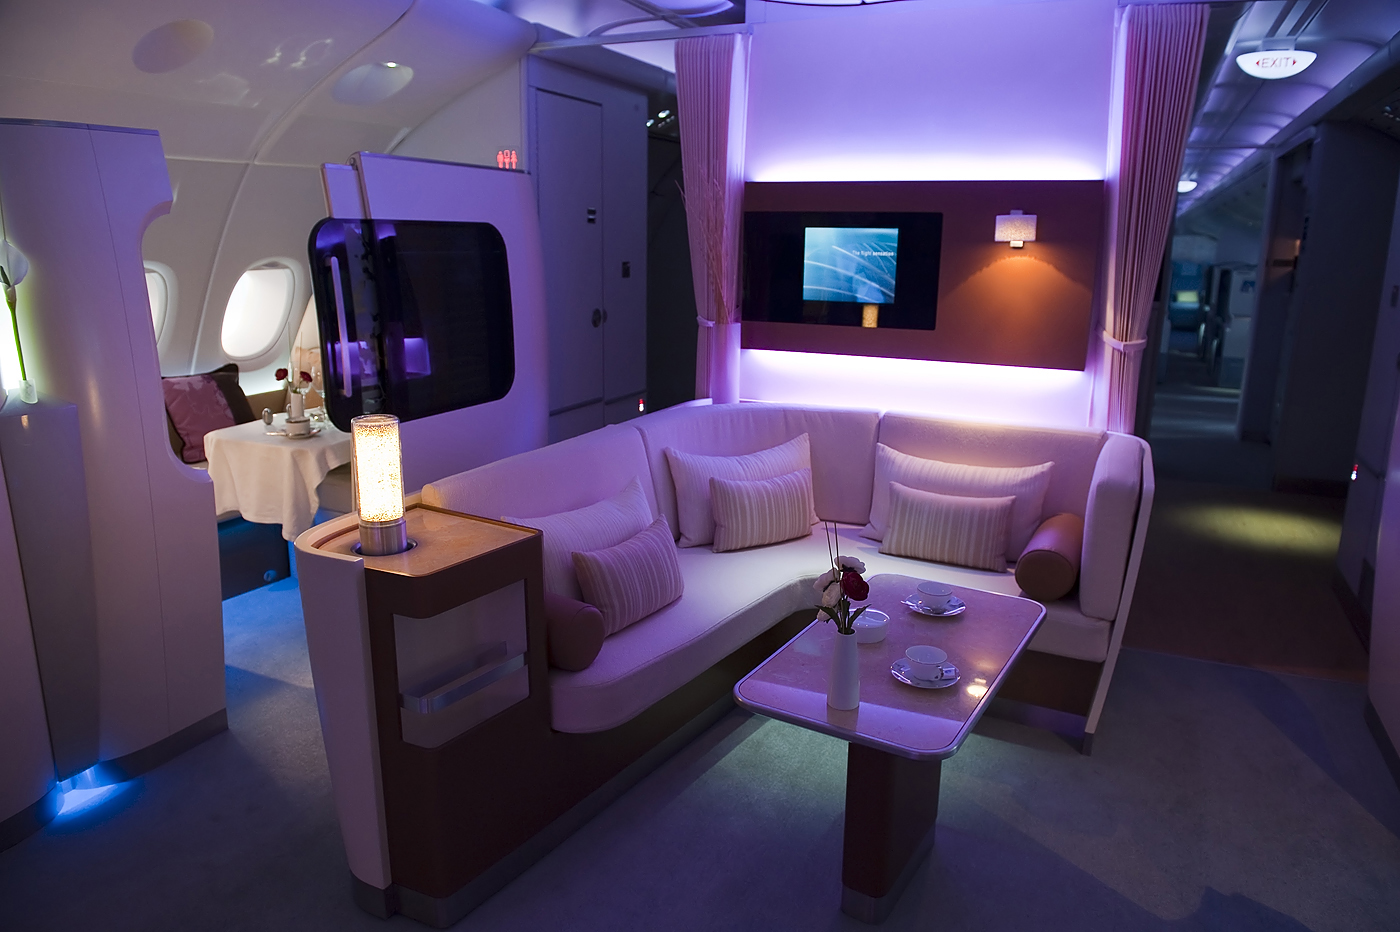 First Class Cabin On The Airbus A 380 Photograph By